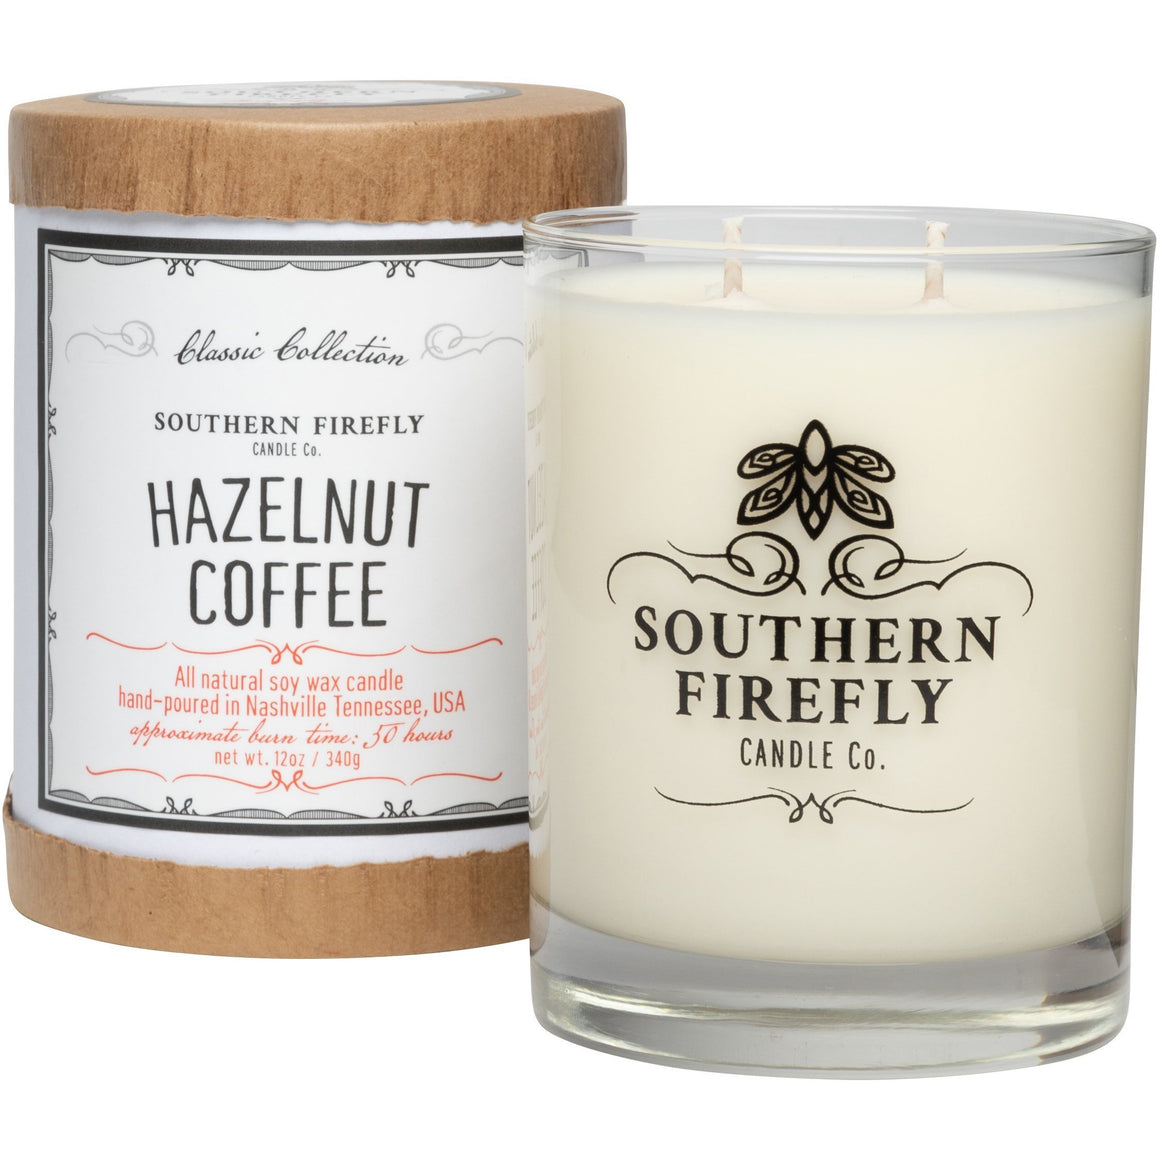 Southern Firefly Candle Co. HAZELNUT COFFEE - 14 oz GLASS CONTAINER